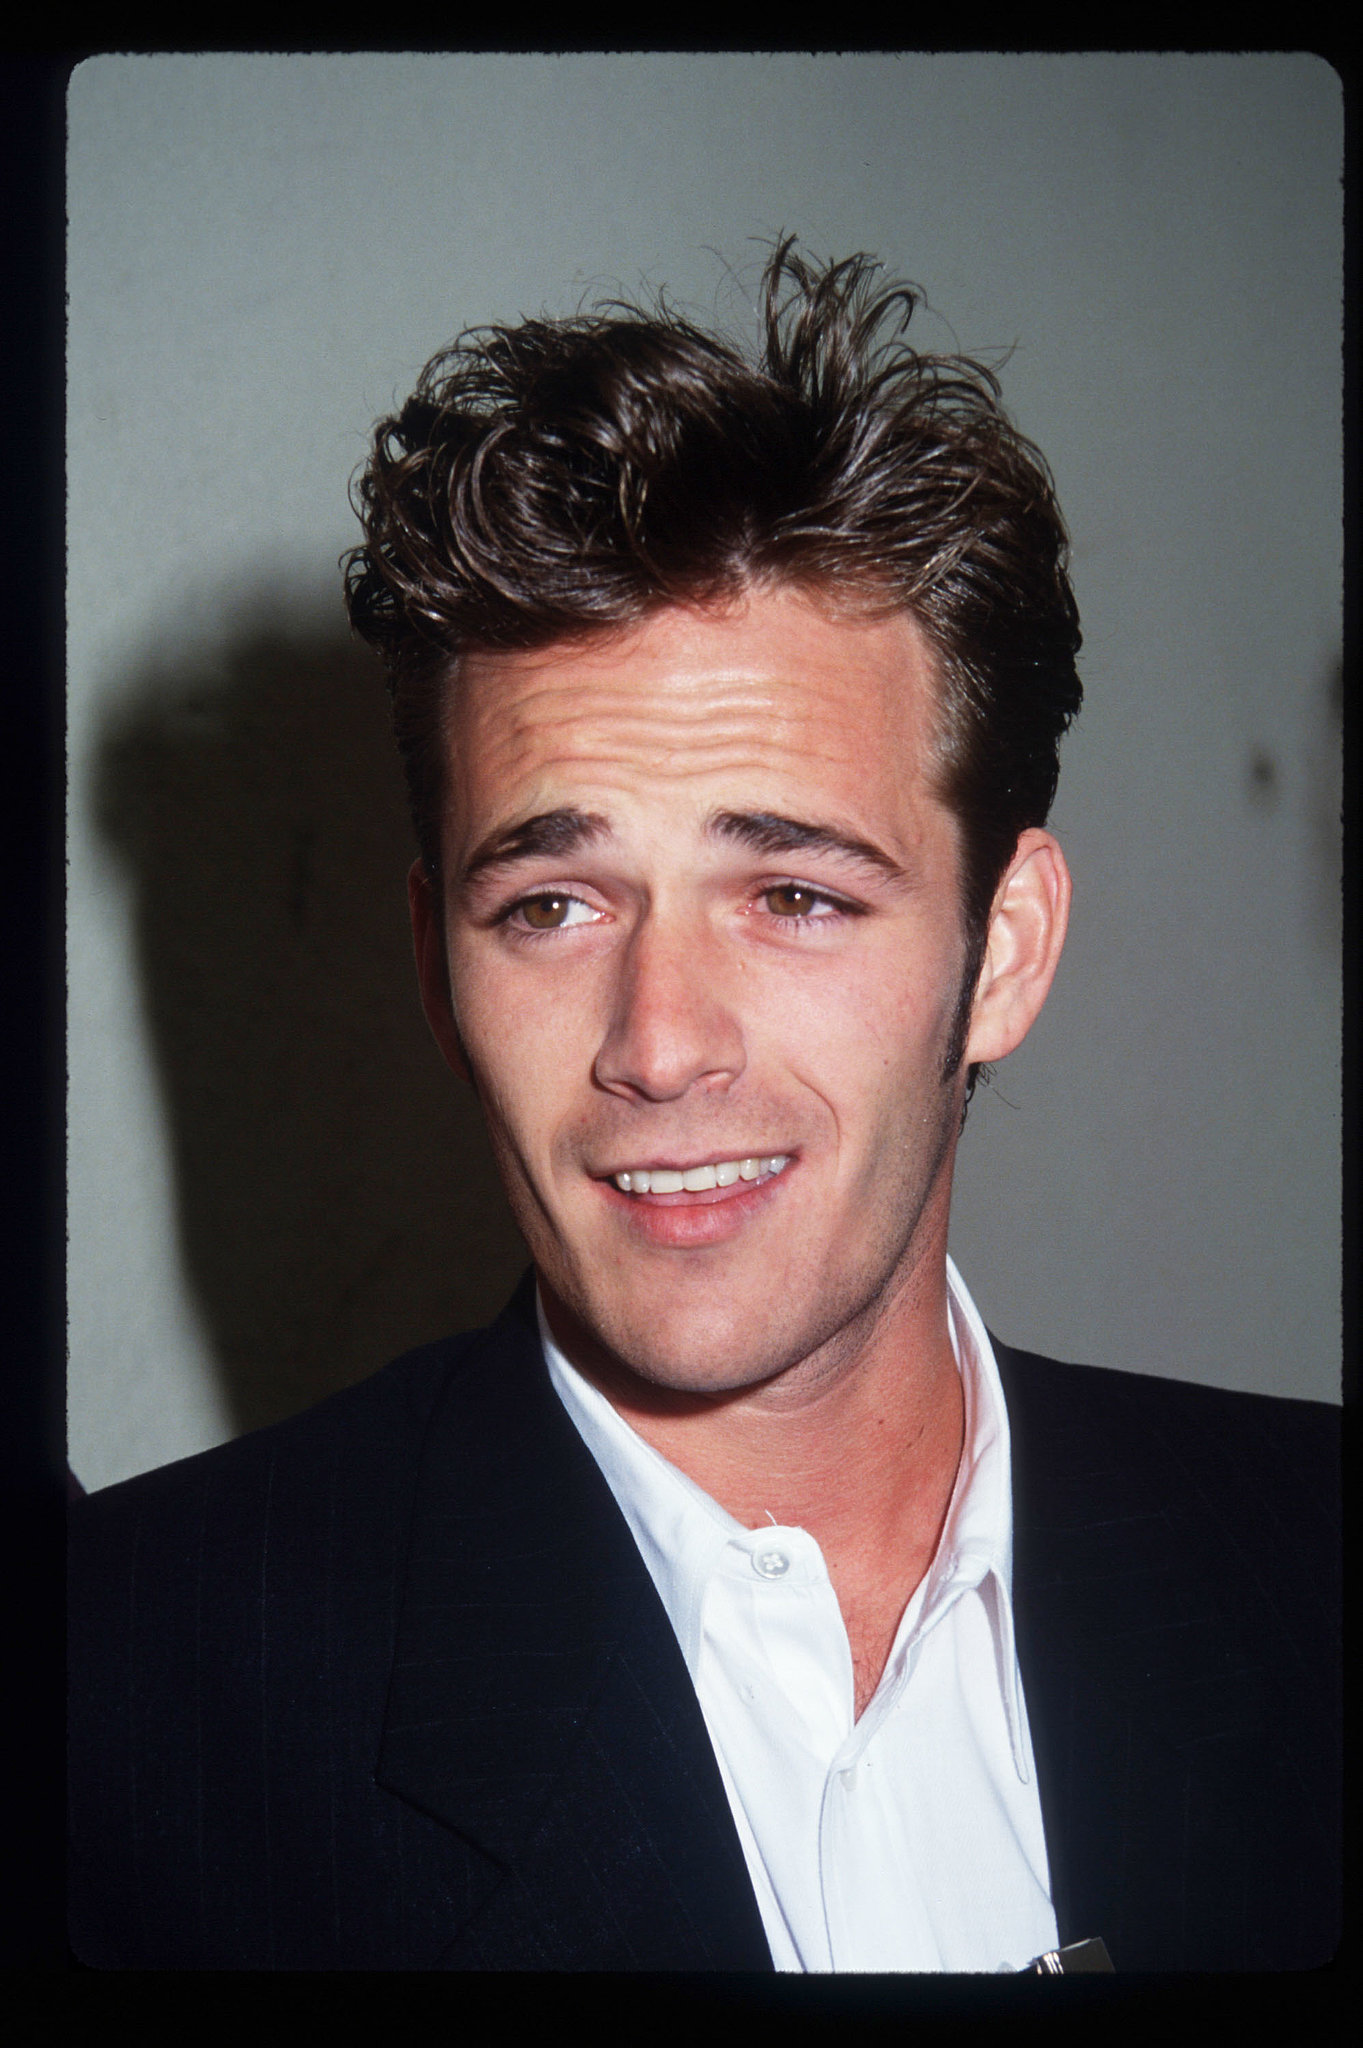 Luke perry 375 reasons why being a 90s girl rocked our jellies off